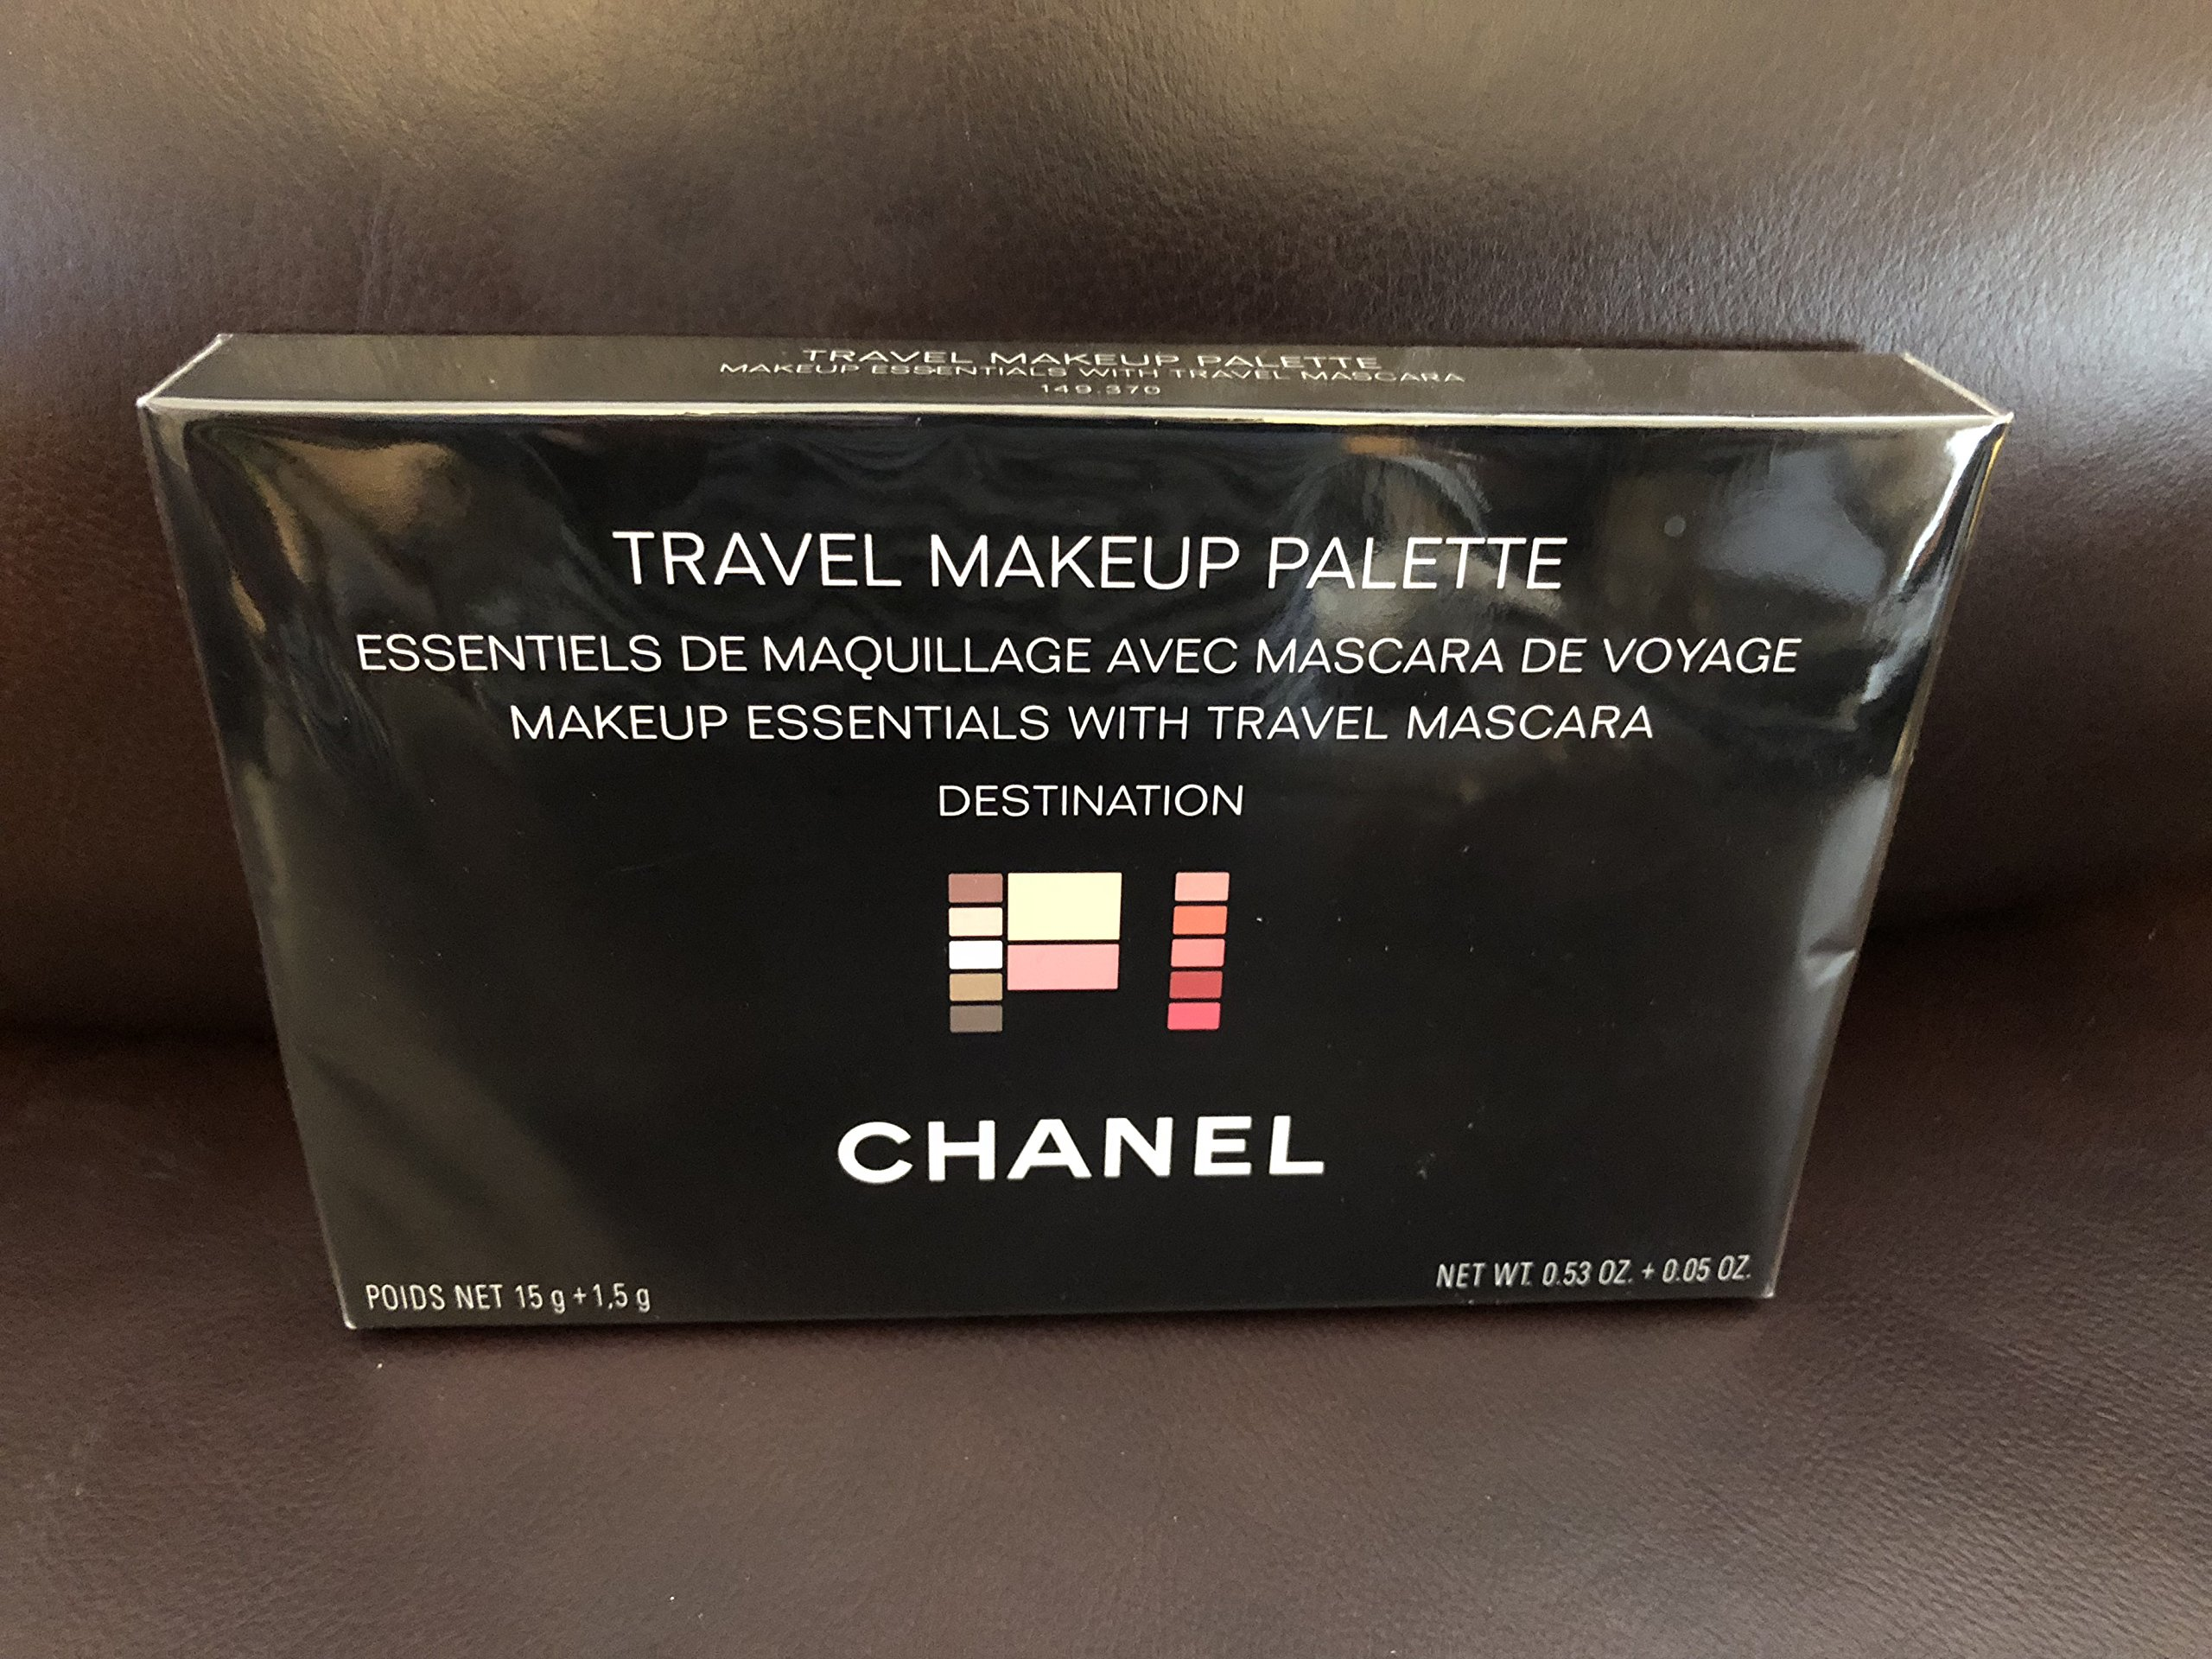 C H A N E L Travel Makeup Palette- makeup essentials with travel mascara destination